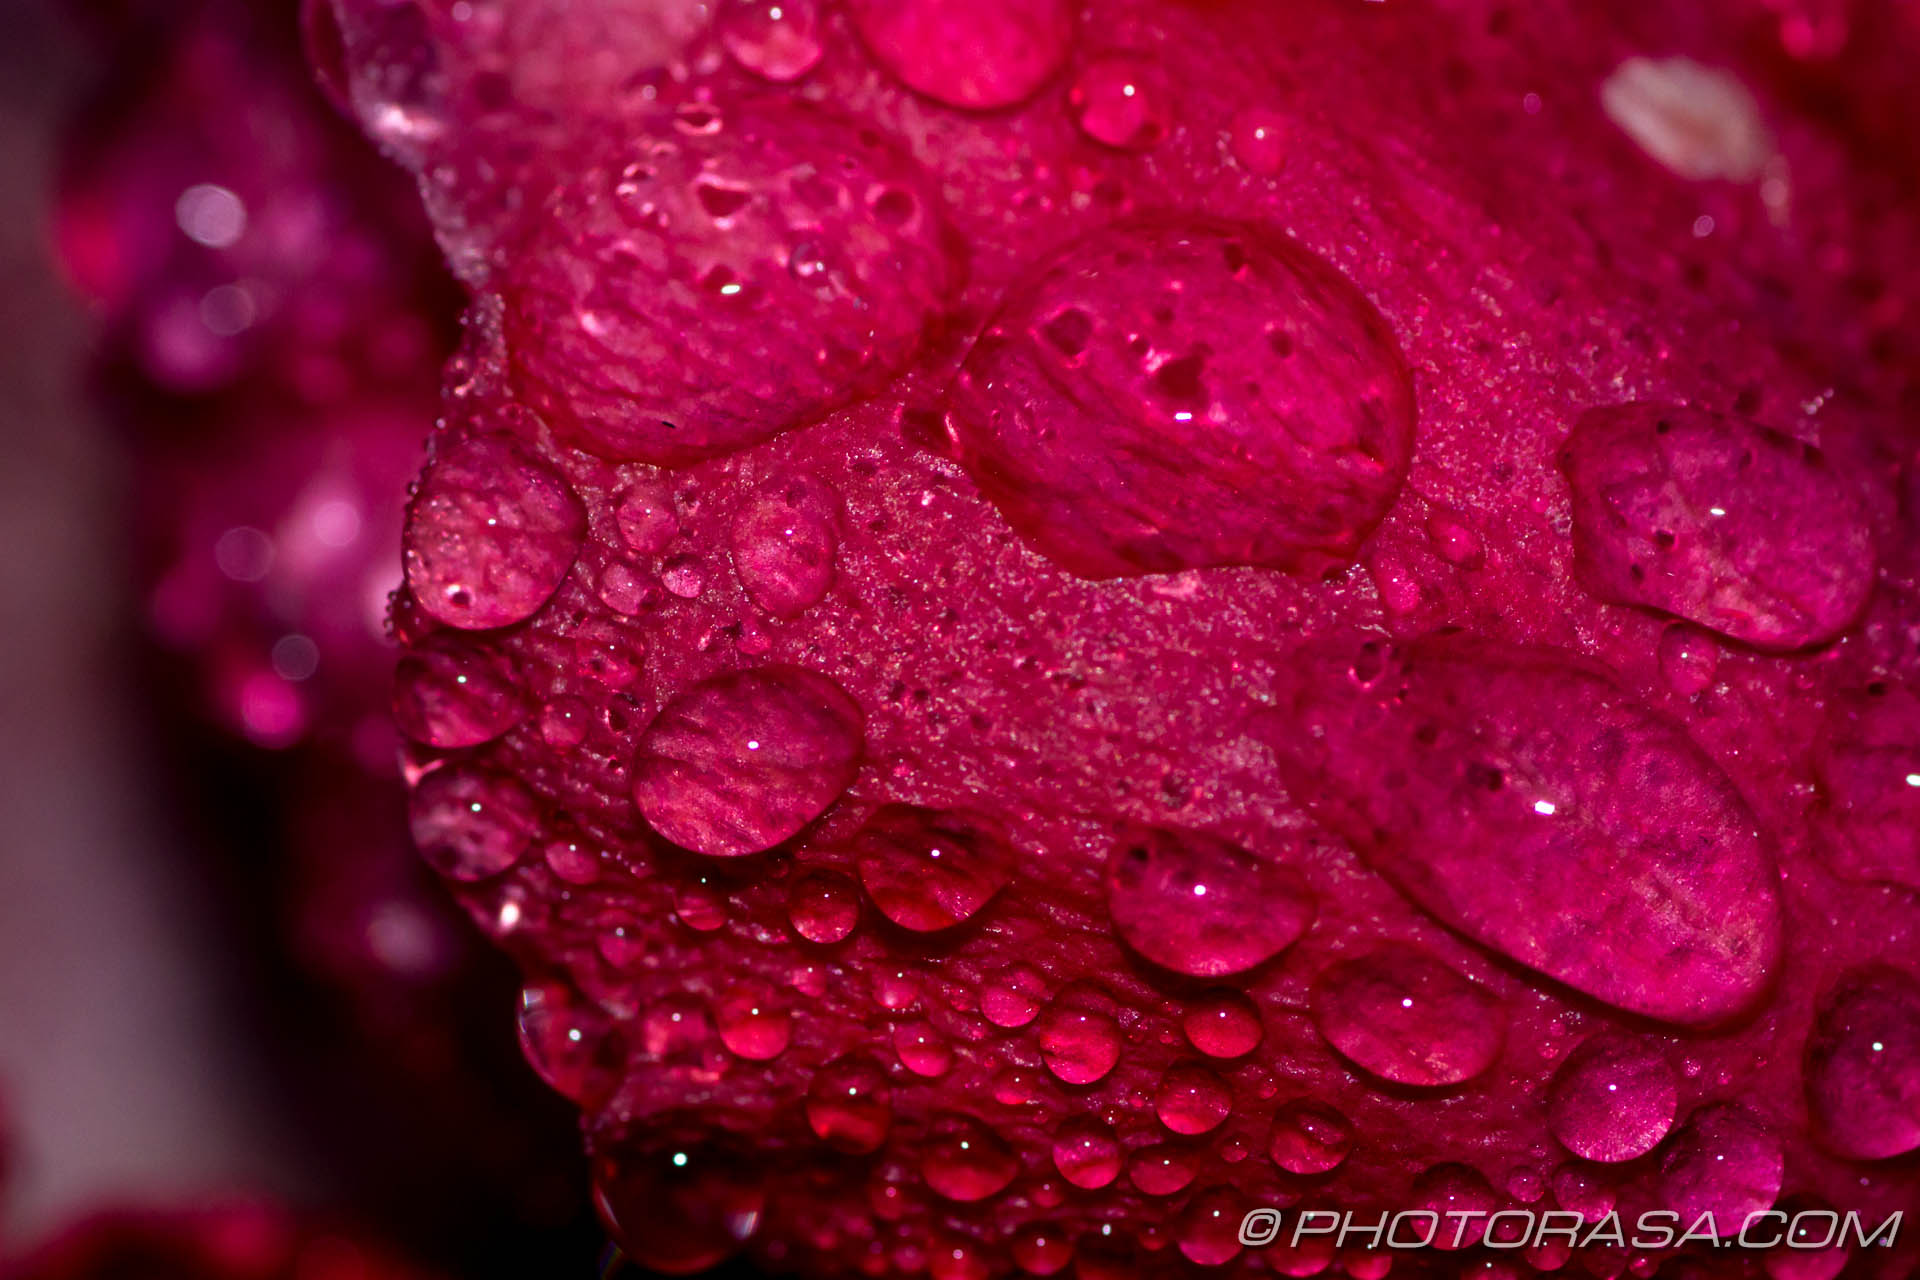 http://photorasa.com/pink-rose-in-the-rain/dewdrop-pattern-on-pink-rose/